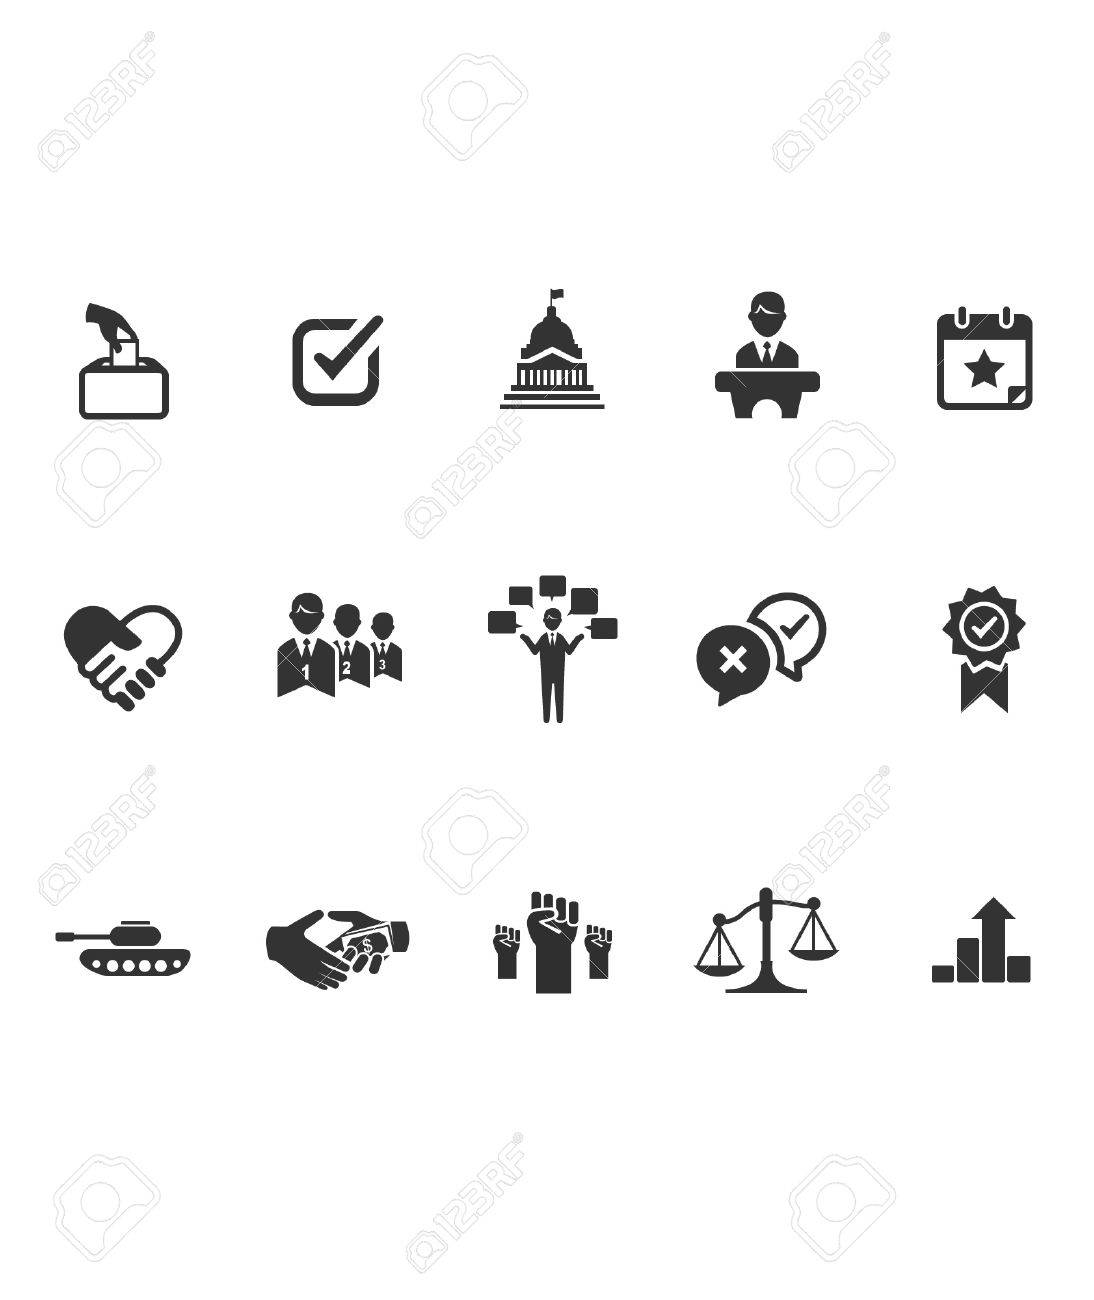 The Political icons Stock Vector - 27561478